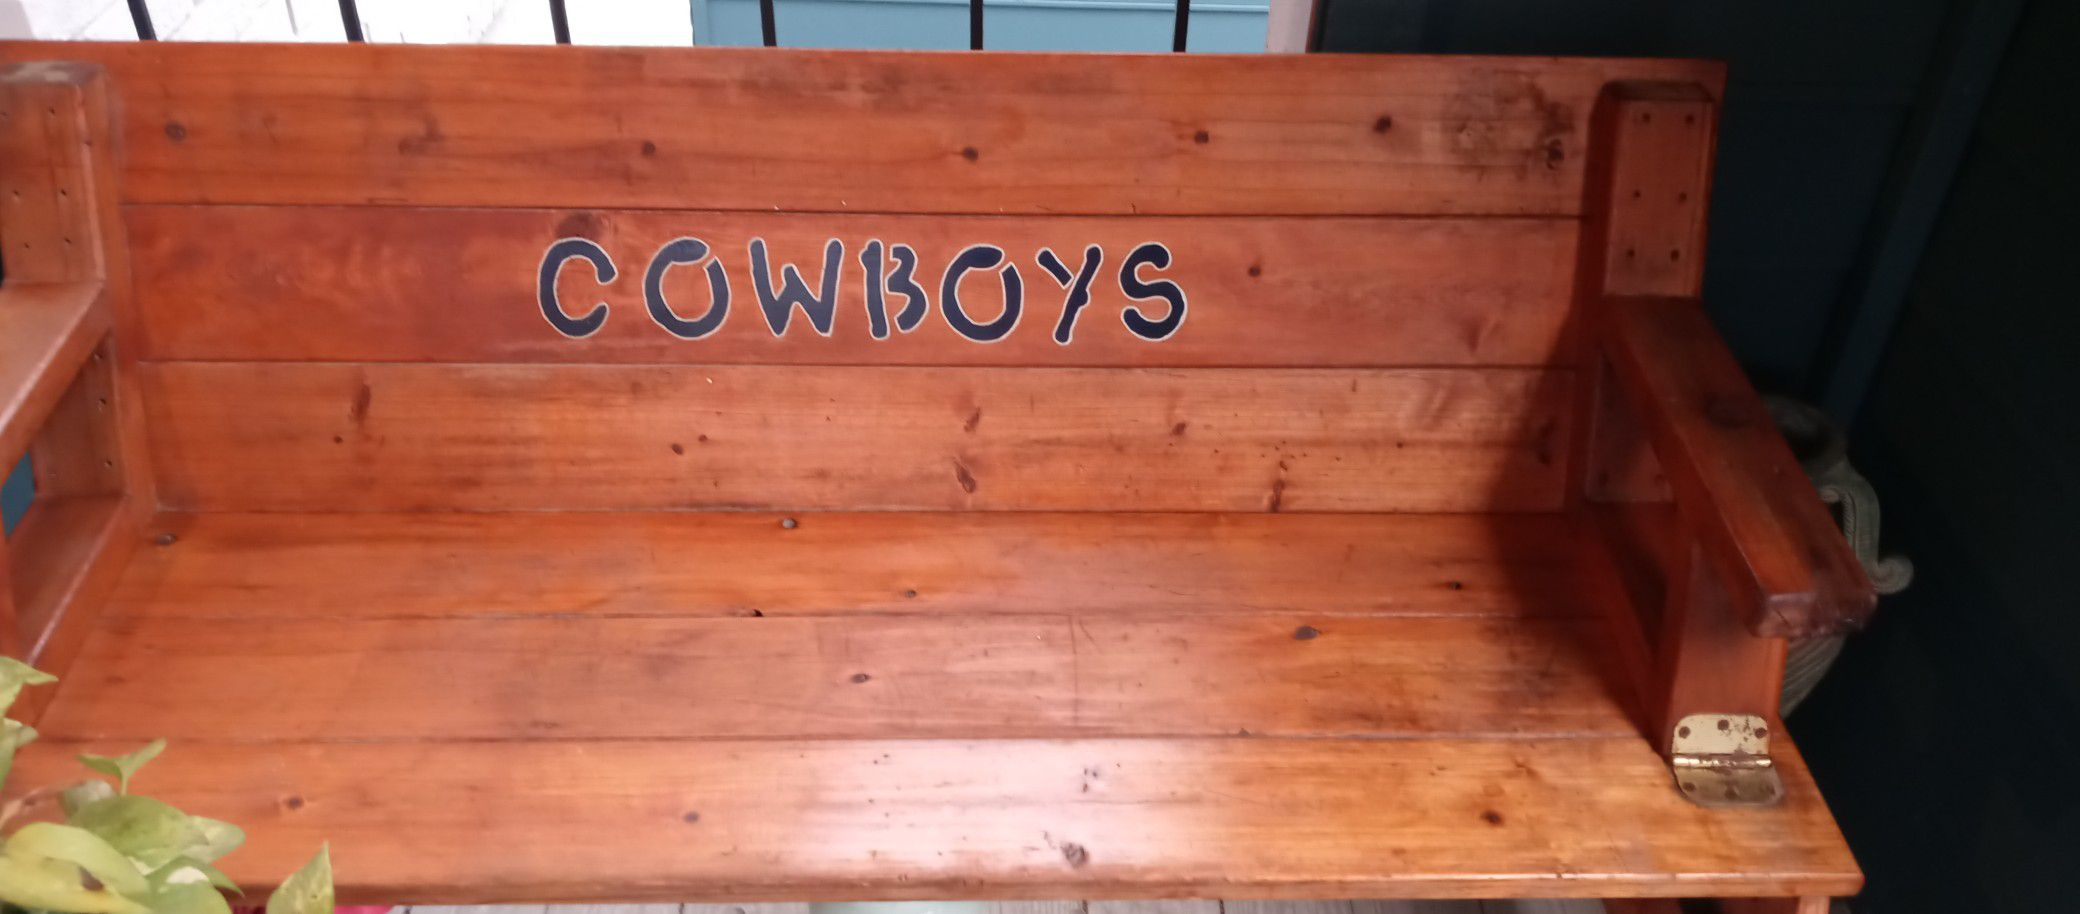 It's a bench of the Dallas Cowboys